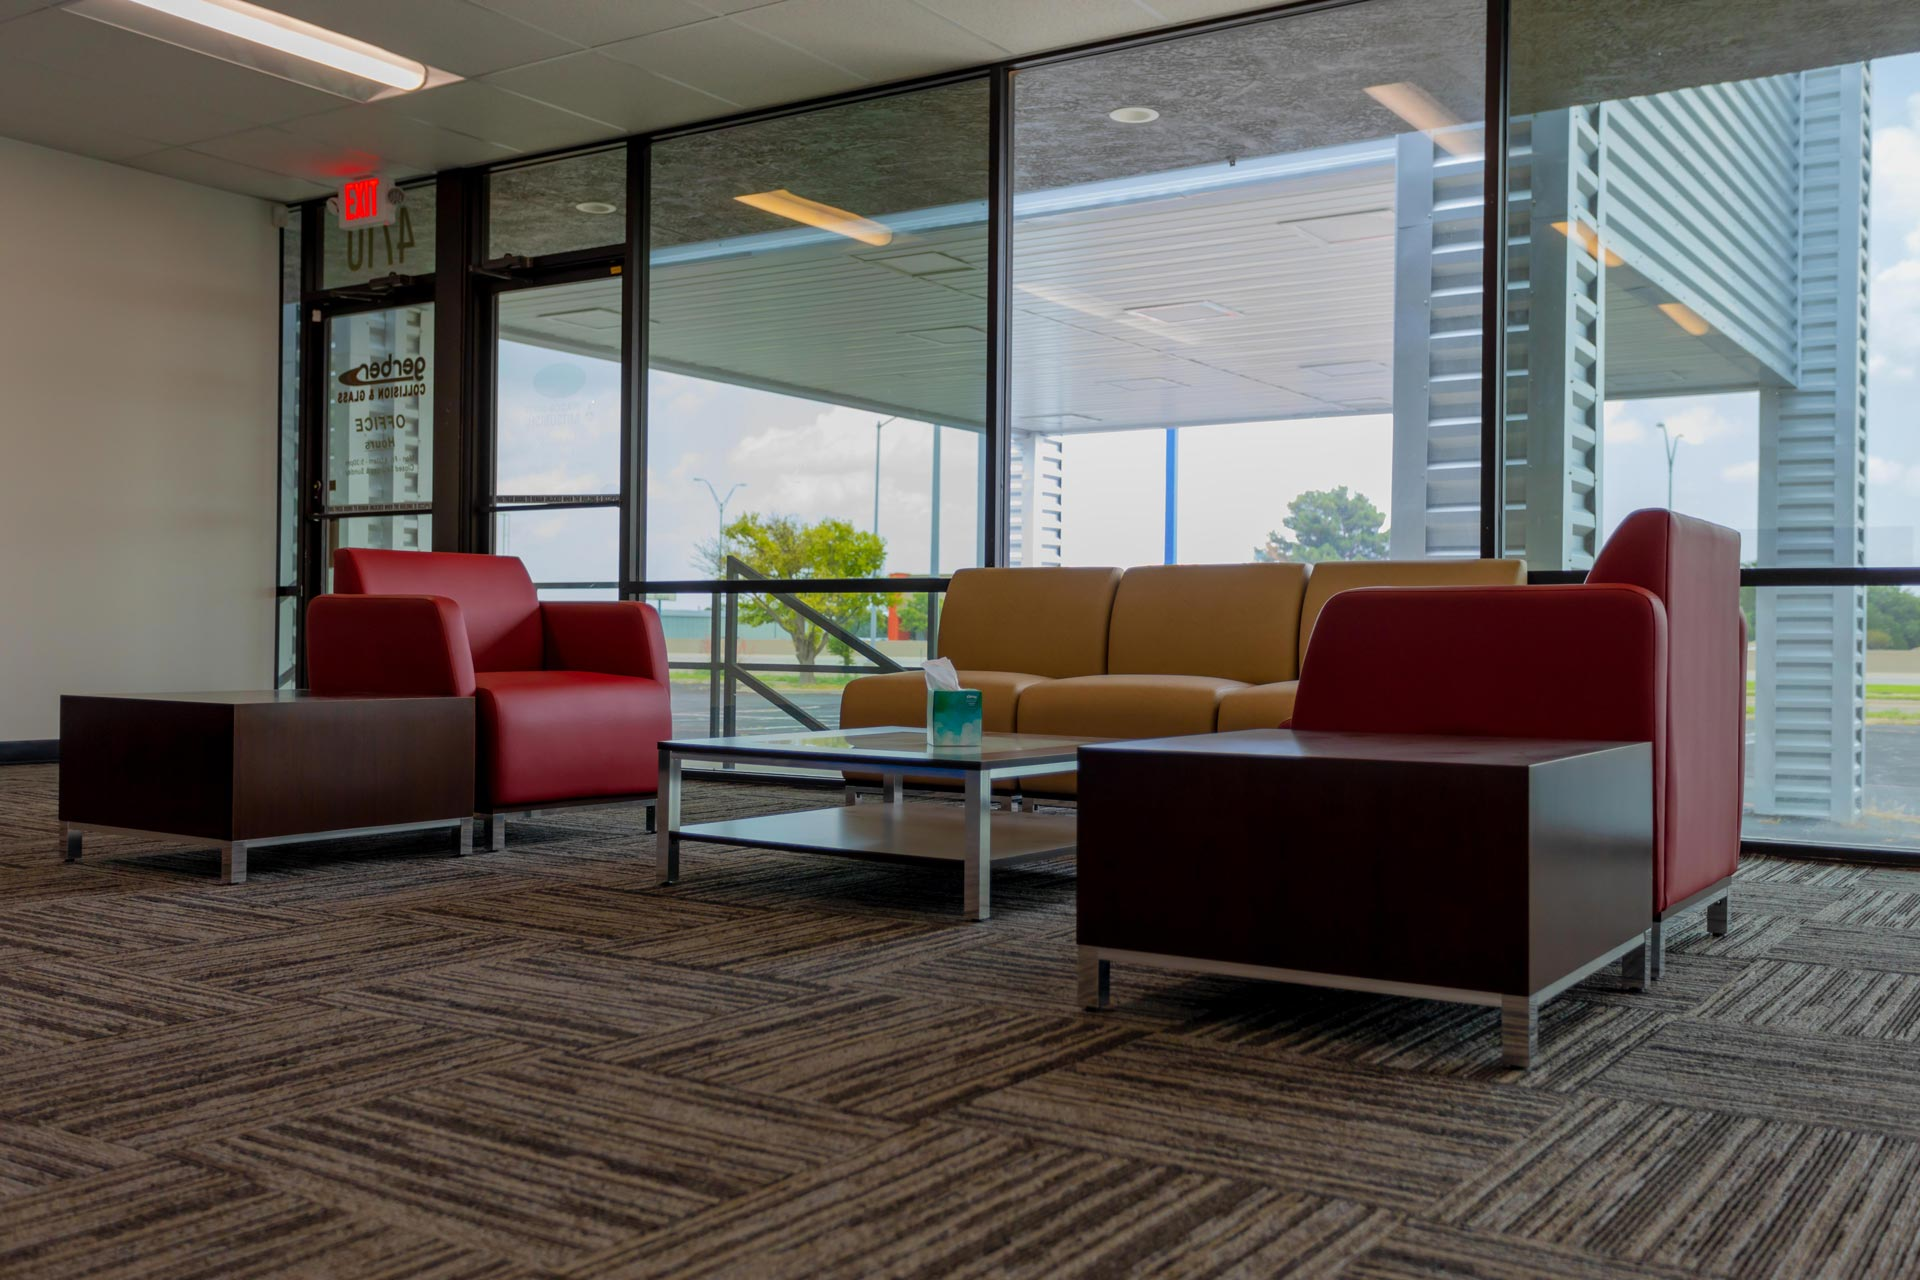 Gerber_colllision_and_glass_Amarillo_ Building_Interior_4_Cole_Stanley